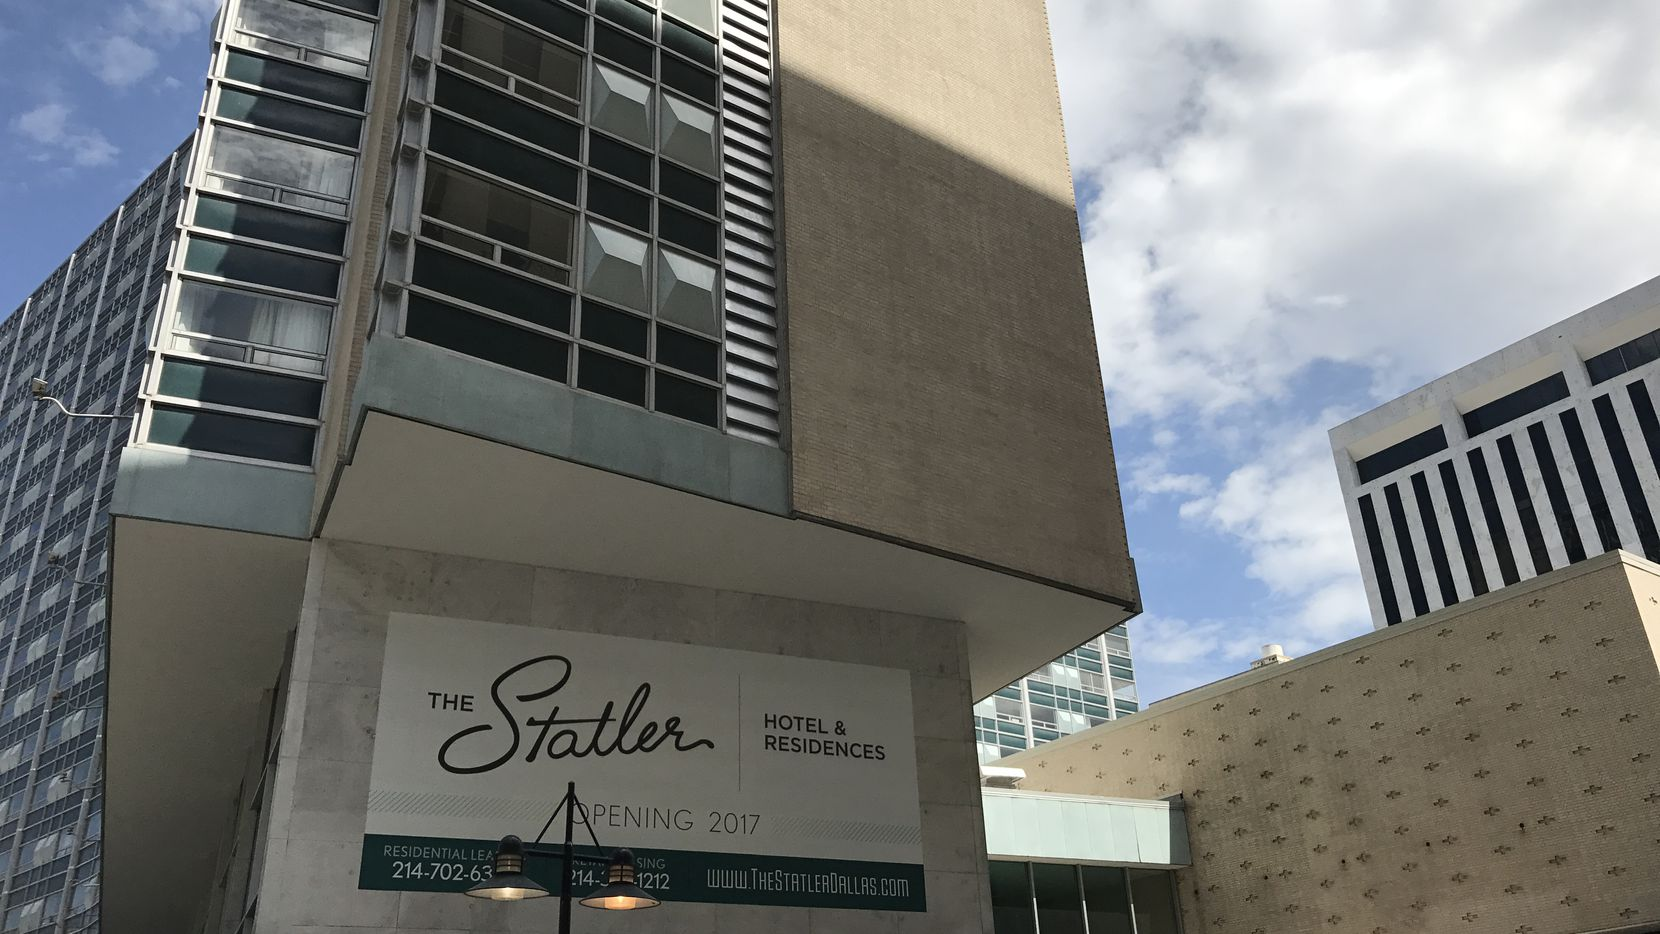 About 130 people who live in the historic Statler Hotel will have to relocate temporarily.